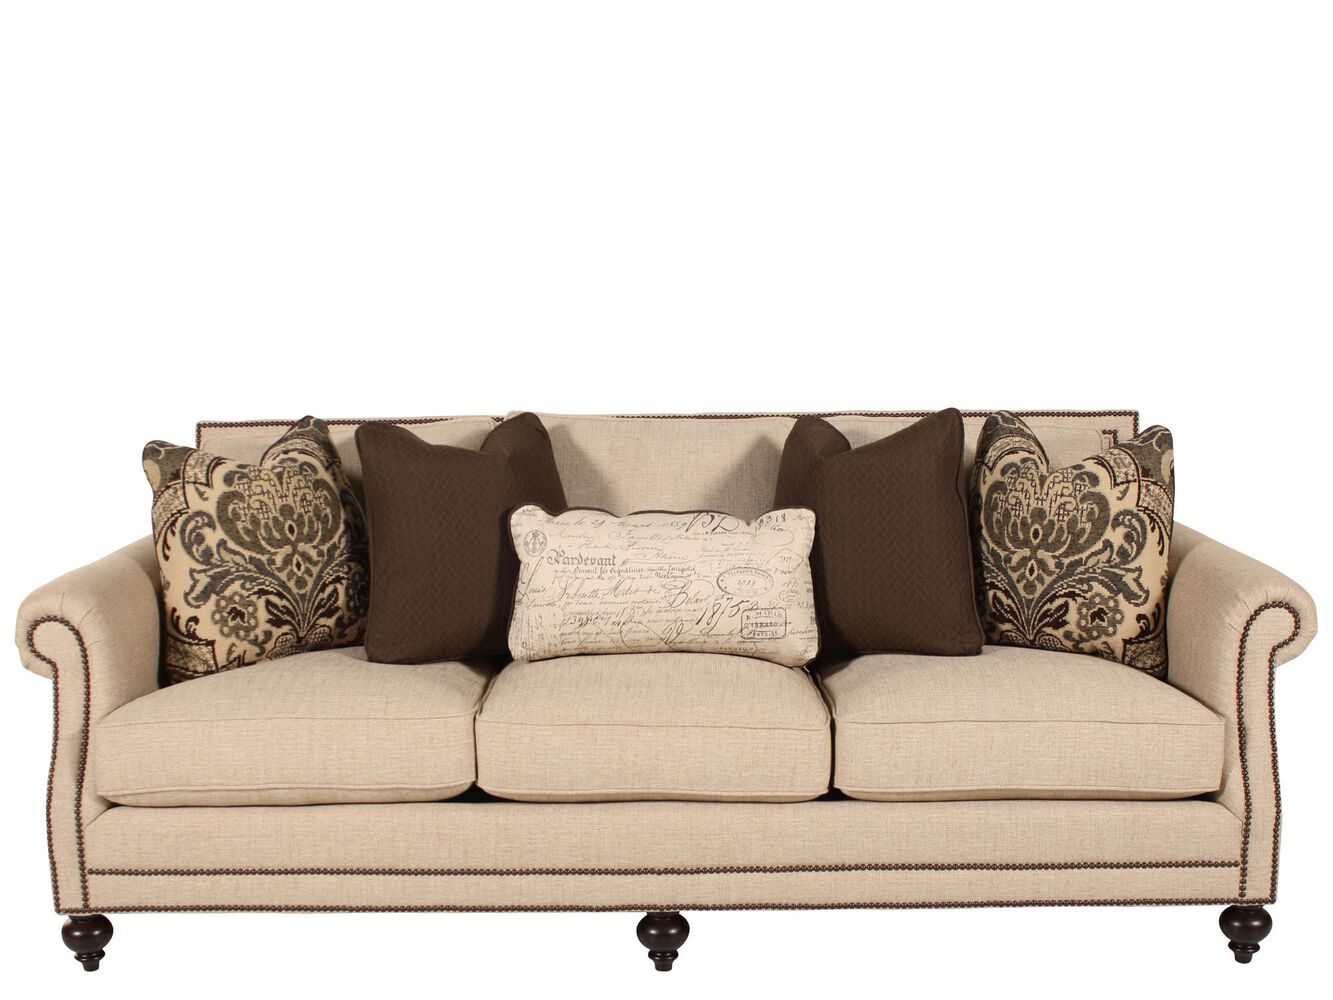 Bernhardt brae sofa mathis brothers furniture for Bernhardt furniture